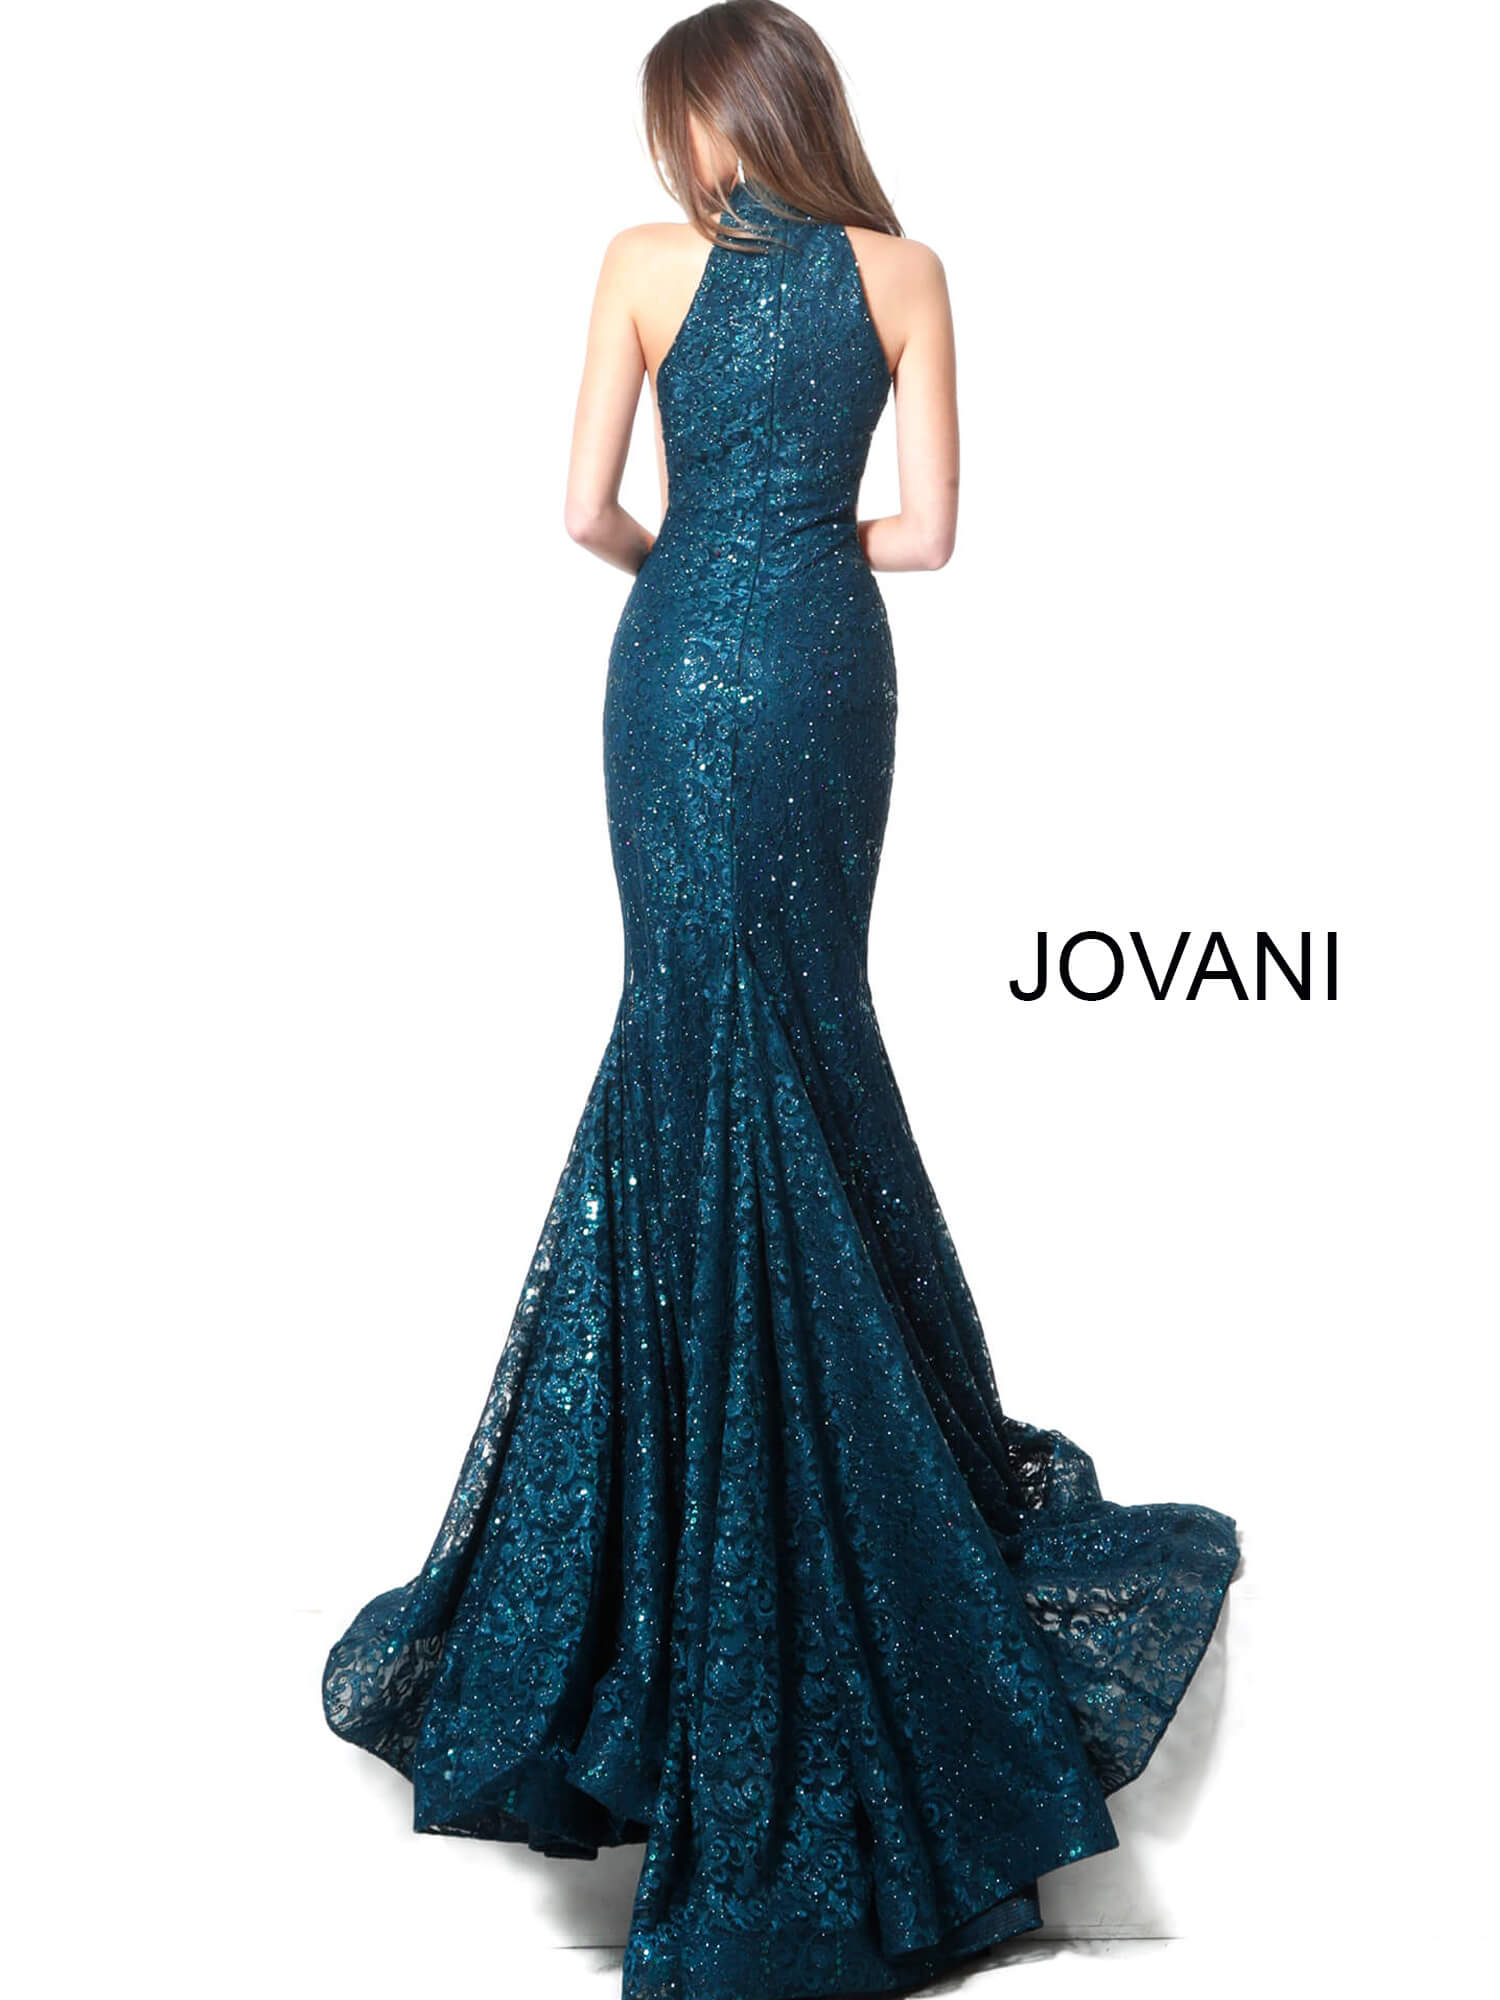 peacock lace sleeveless Jovani dress 64522 on mobile 1